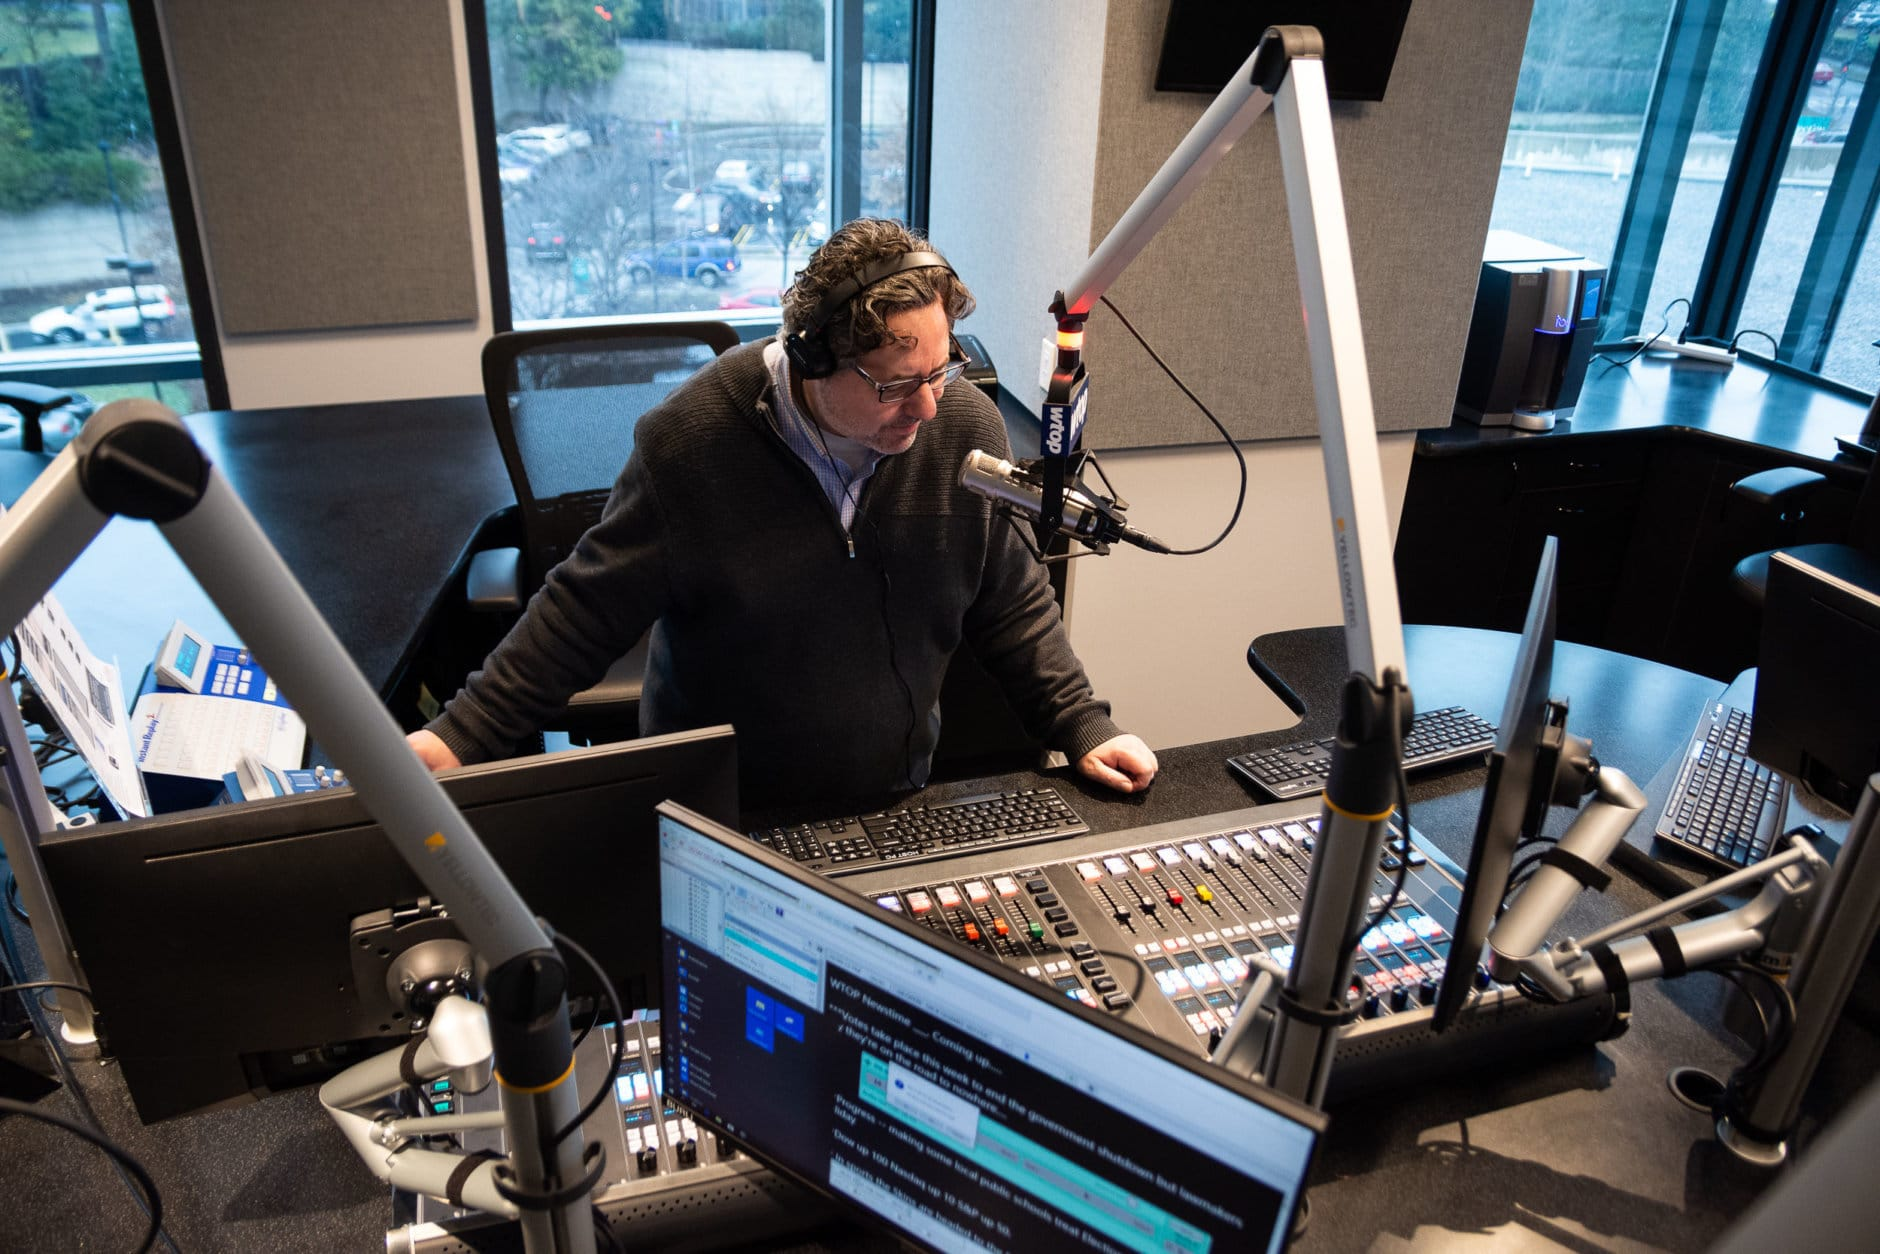 WTOP anchor Dimitri Sotis familiarizes himself with the new Glass-Enclosed Nerve Center. (WTOP/Alejandro Alvarez)